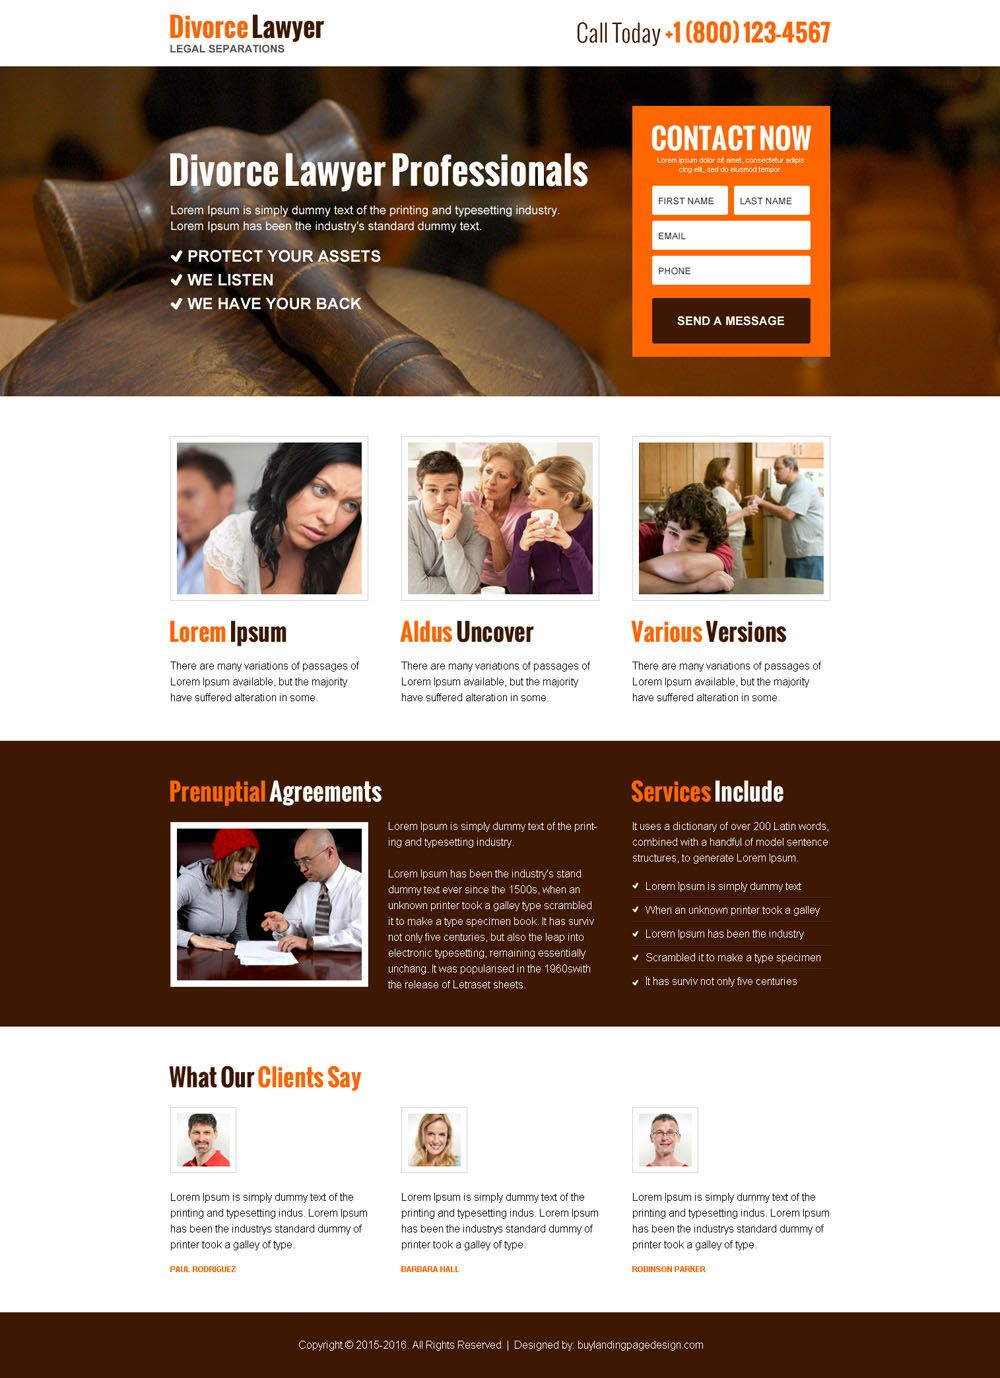 Divorce Lawyer Professional Responsive Landing Page With Images